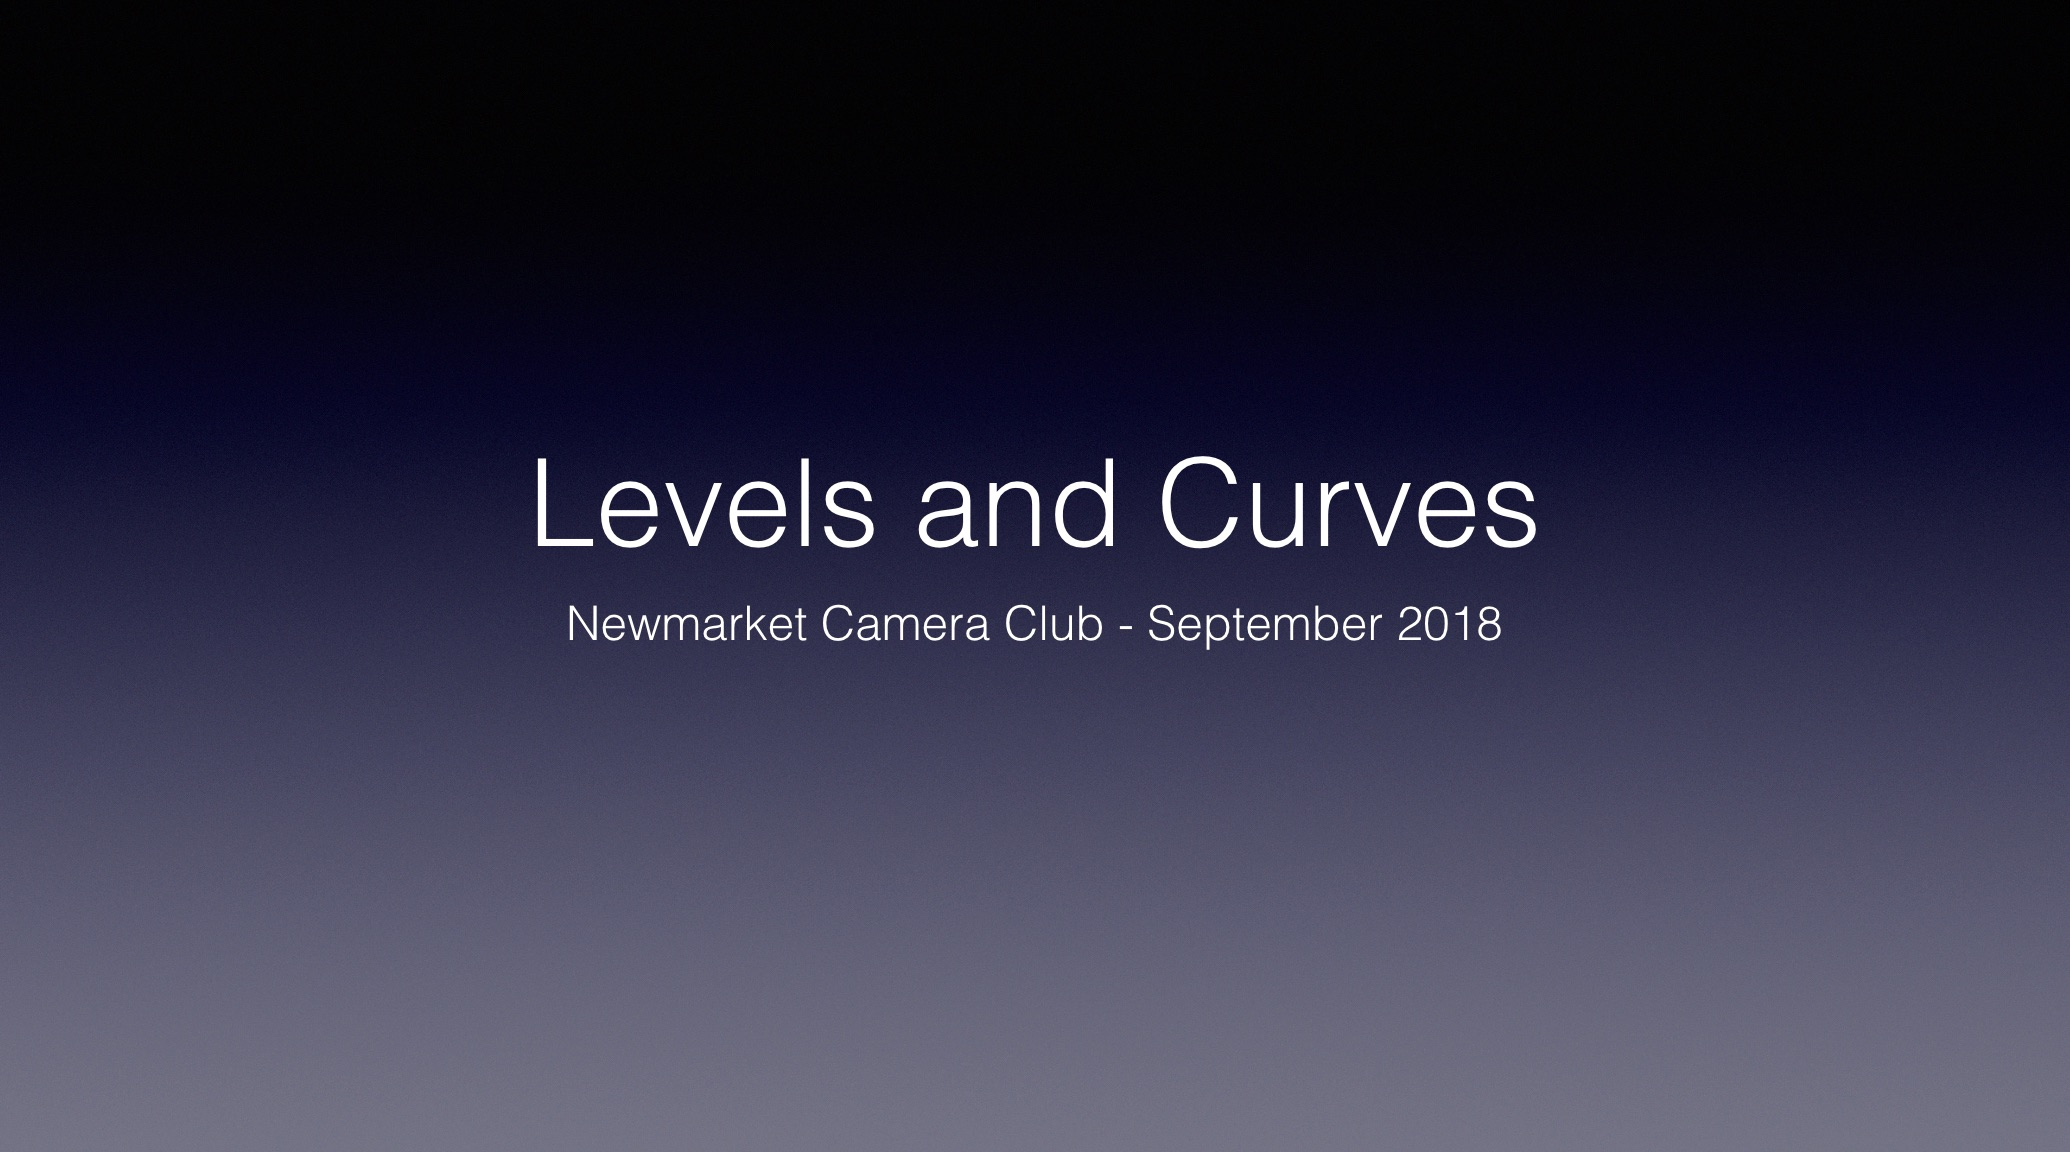 Window_and_Levels_and_Curves.jpg